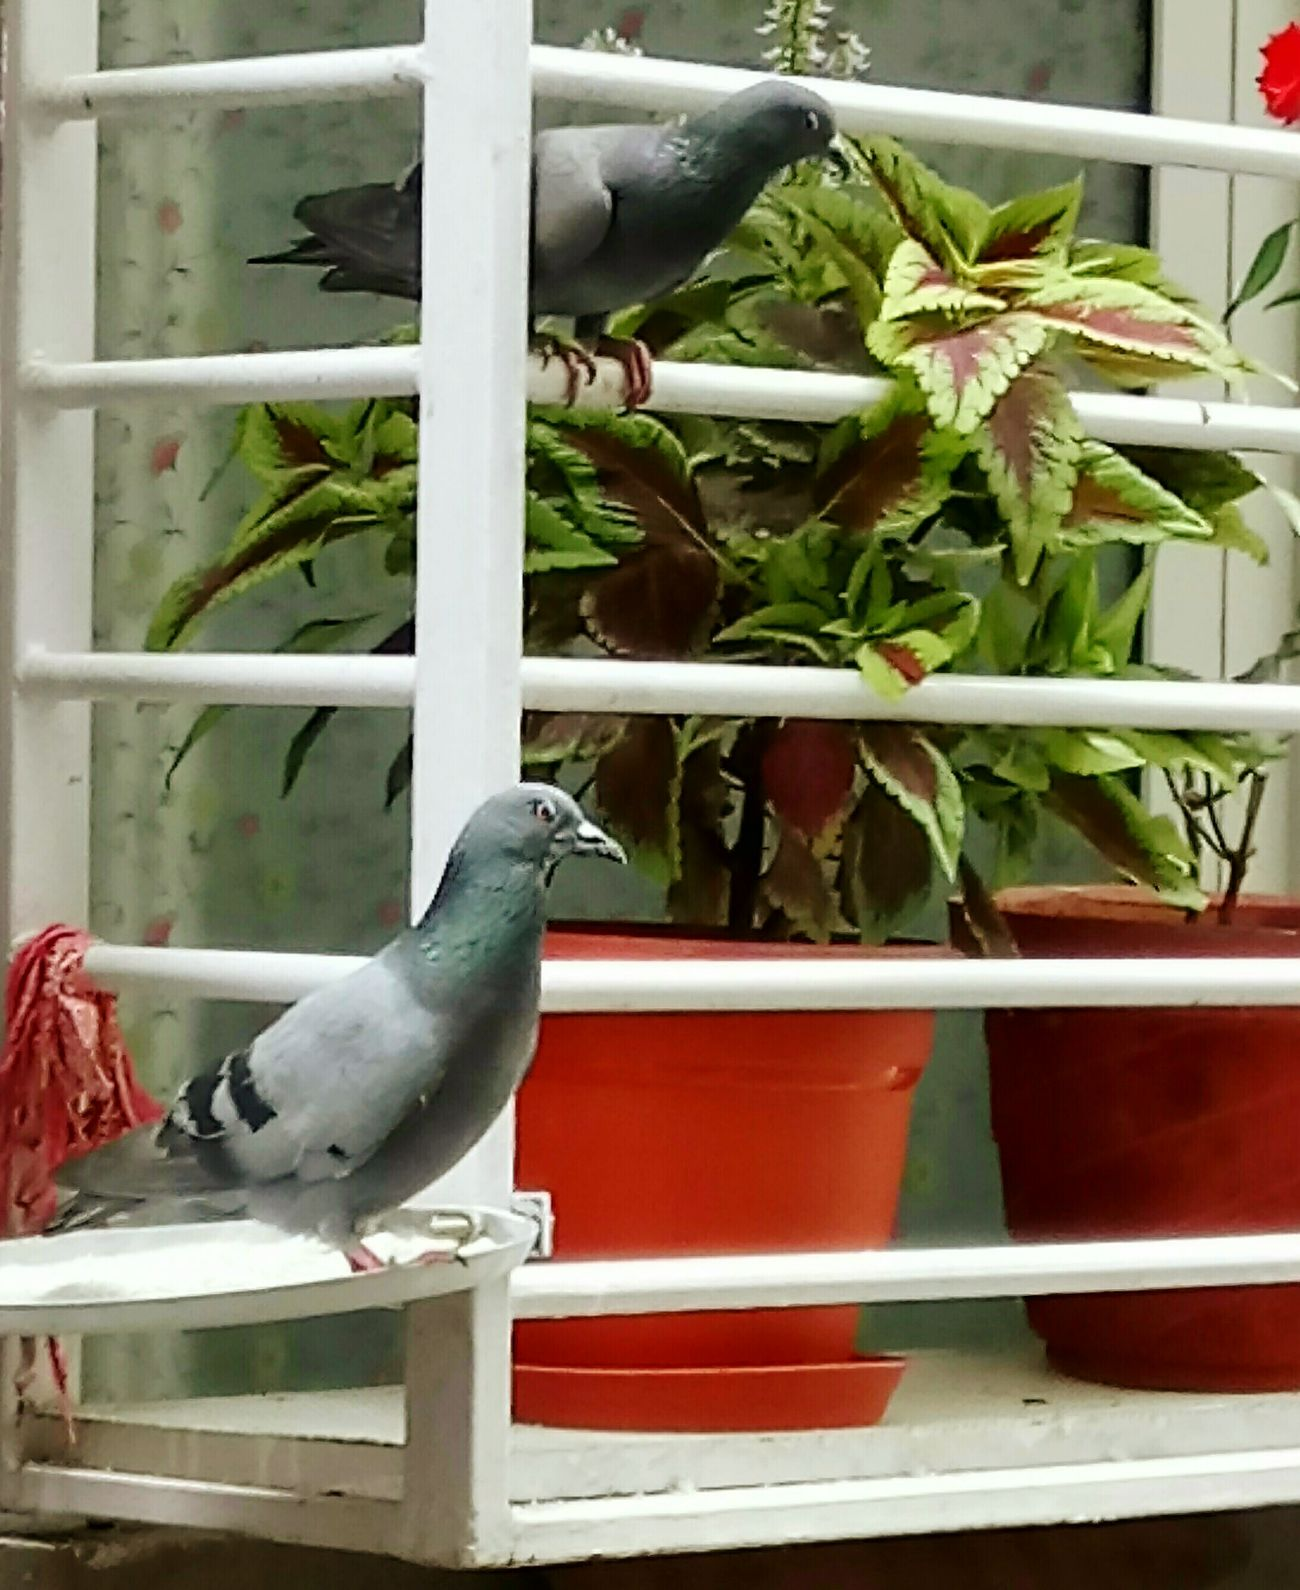 The watch Mobilephotography Mobile Photography Sony Xperia Photography. Bird Plant No People Close-up Day Nature Outdoors Animal Themes Greenhouse Birds Bird Photography Bird Watching Pigeon Pigeonslife Pigeons Birds Of EyeEm